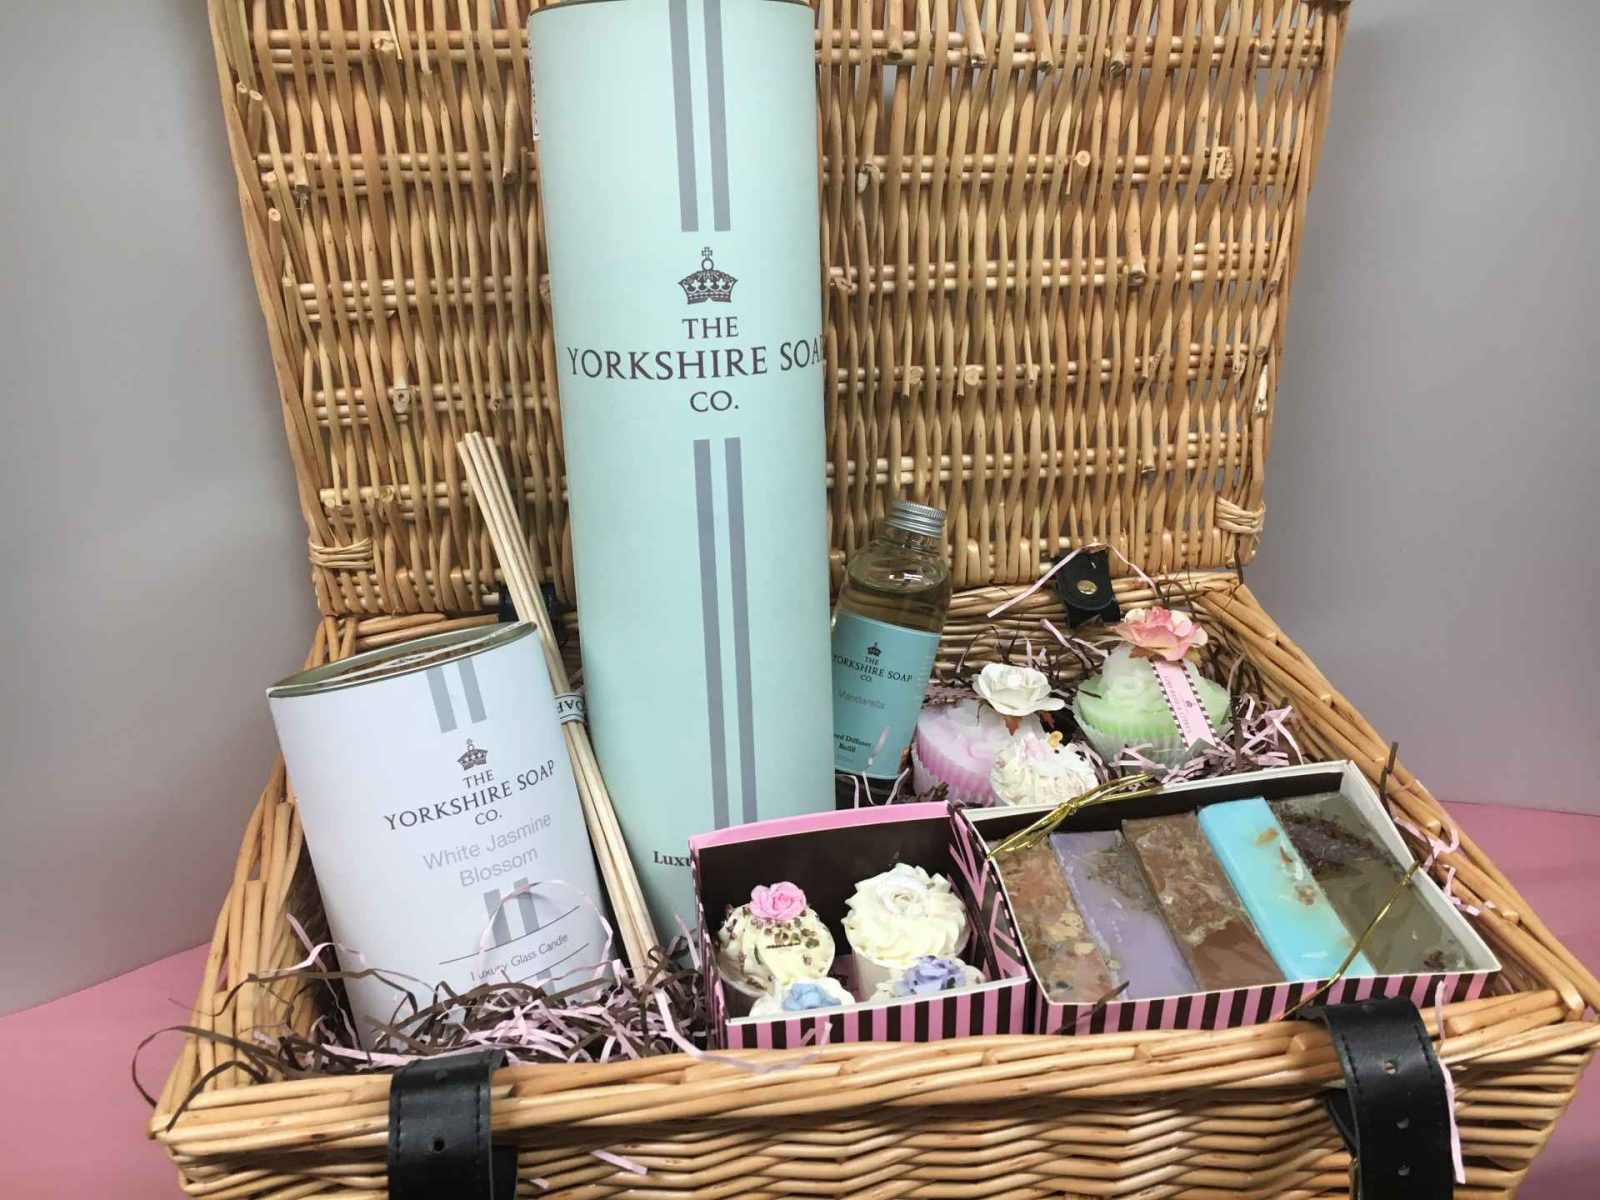 Visit Yorkshire soap online or in store for beautiful soaps and body care with fragrances skillfully blended and products for all the family. Review, photos. Visit Yorkshire Soap on Falcondale Life blog. Image description: Prize £100 hamper